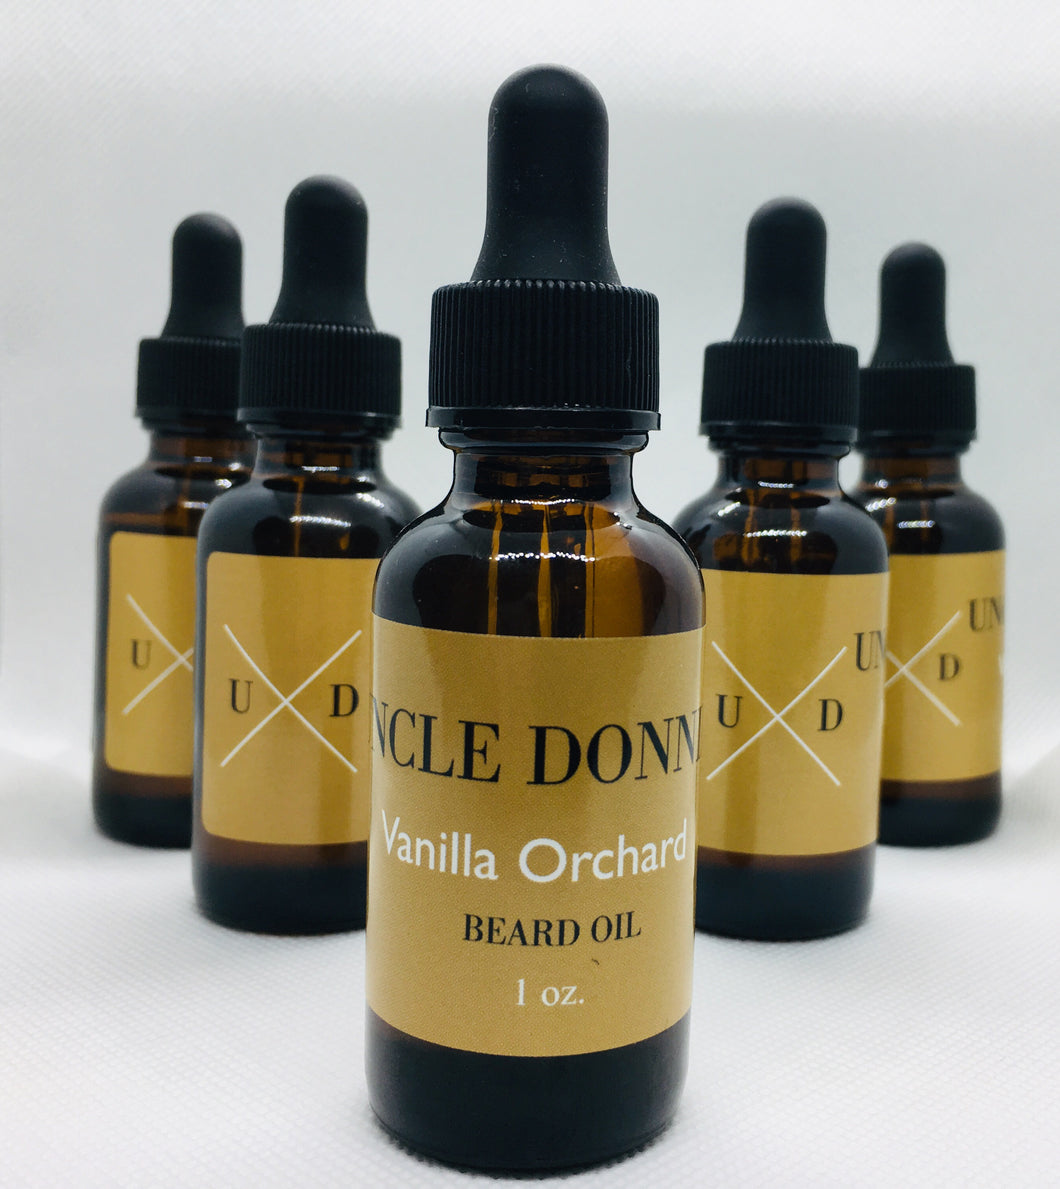 Vanilla Orchard Beard Oil 1 oz.